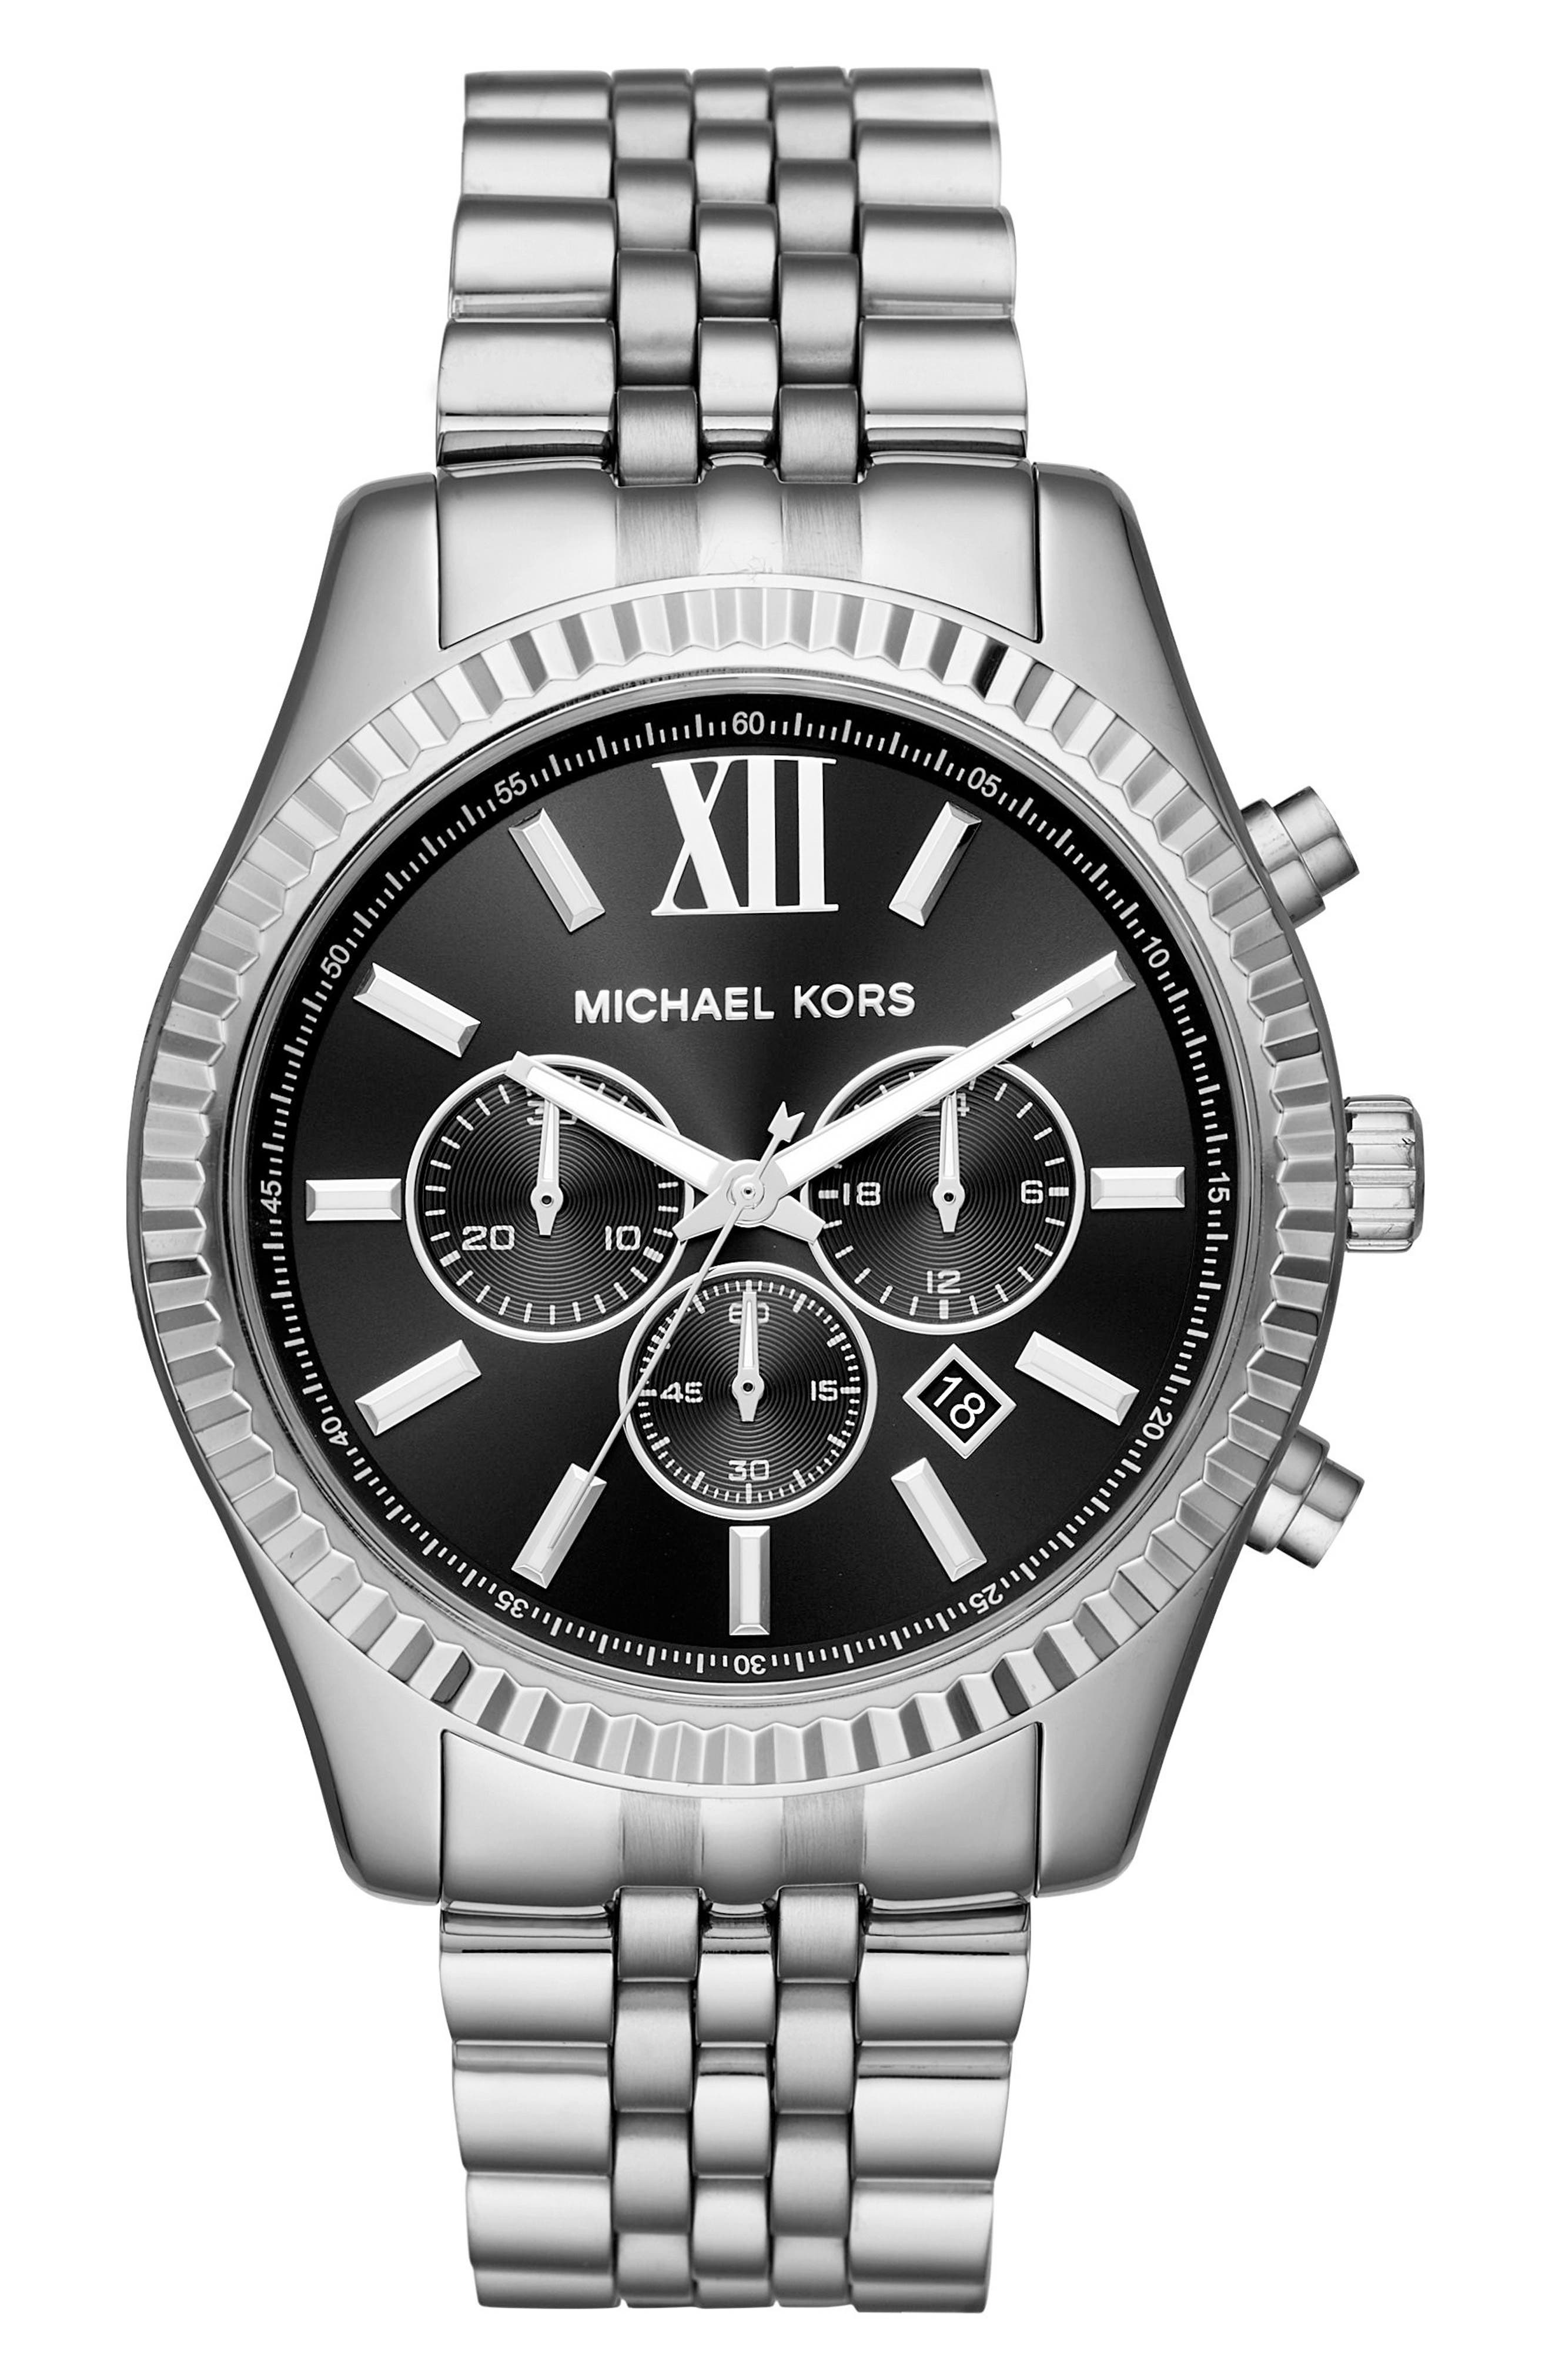 MICHAEL KORS Lexington Bracelet Chronograph Watch, 44mm x 54mm, Main, color, SILVER/ BLACK/ SILVER